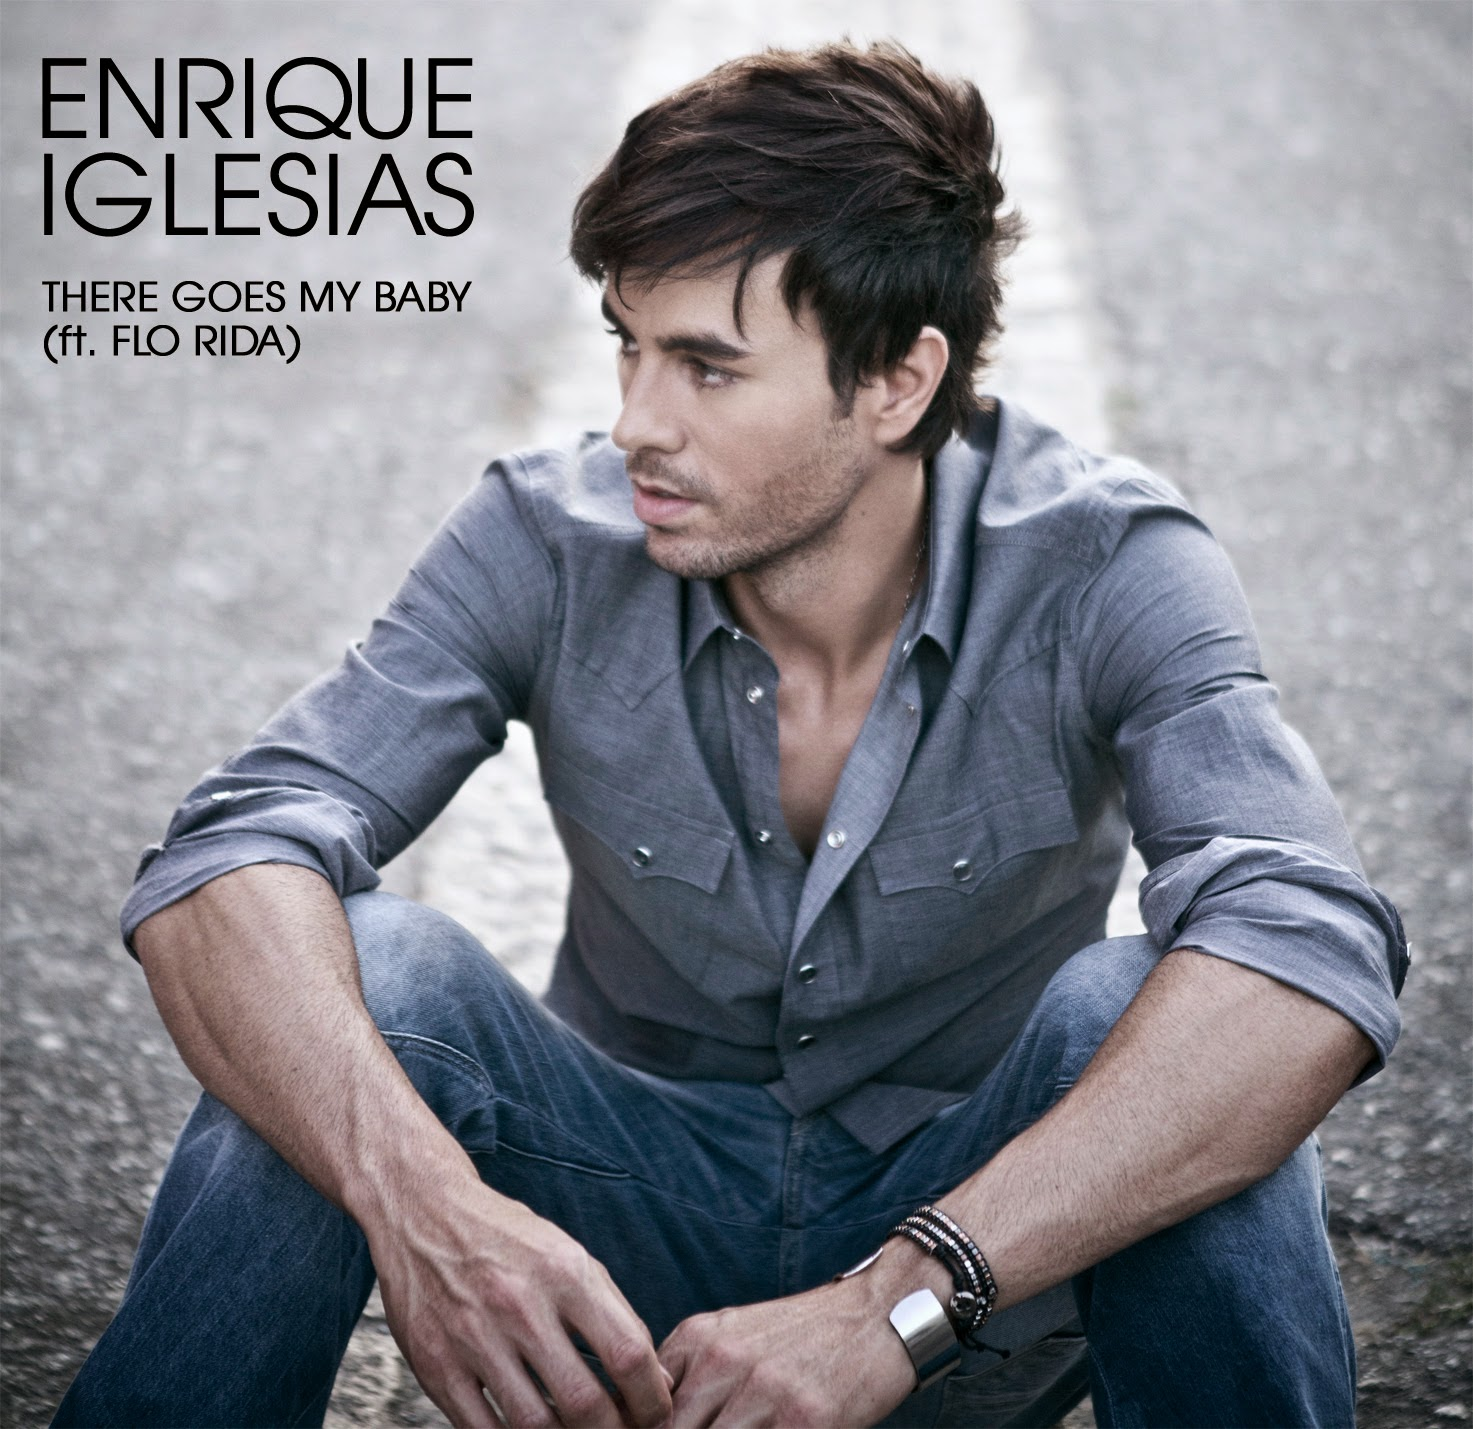 Enrique Iglesias new single Flo Rida there goes my baby